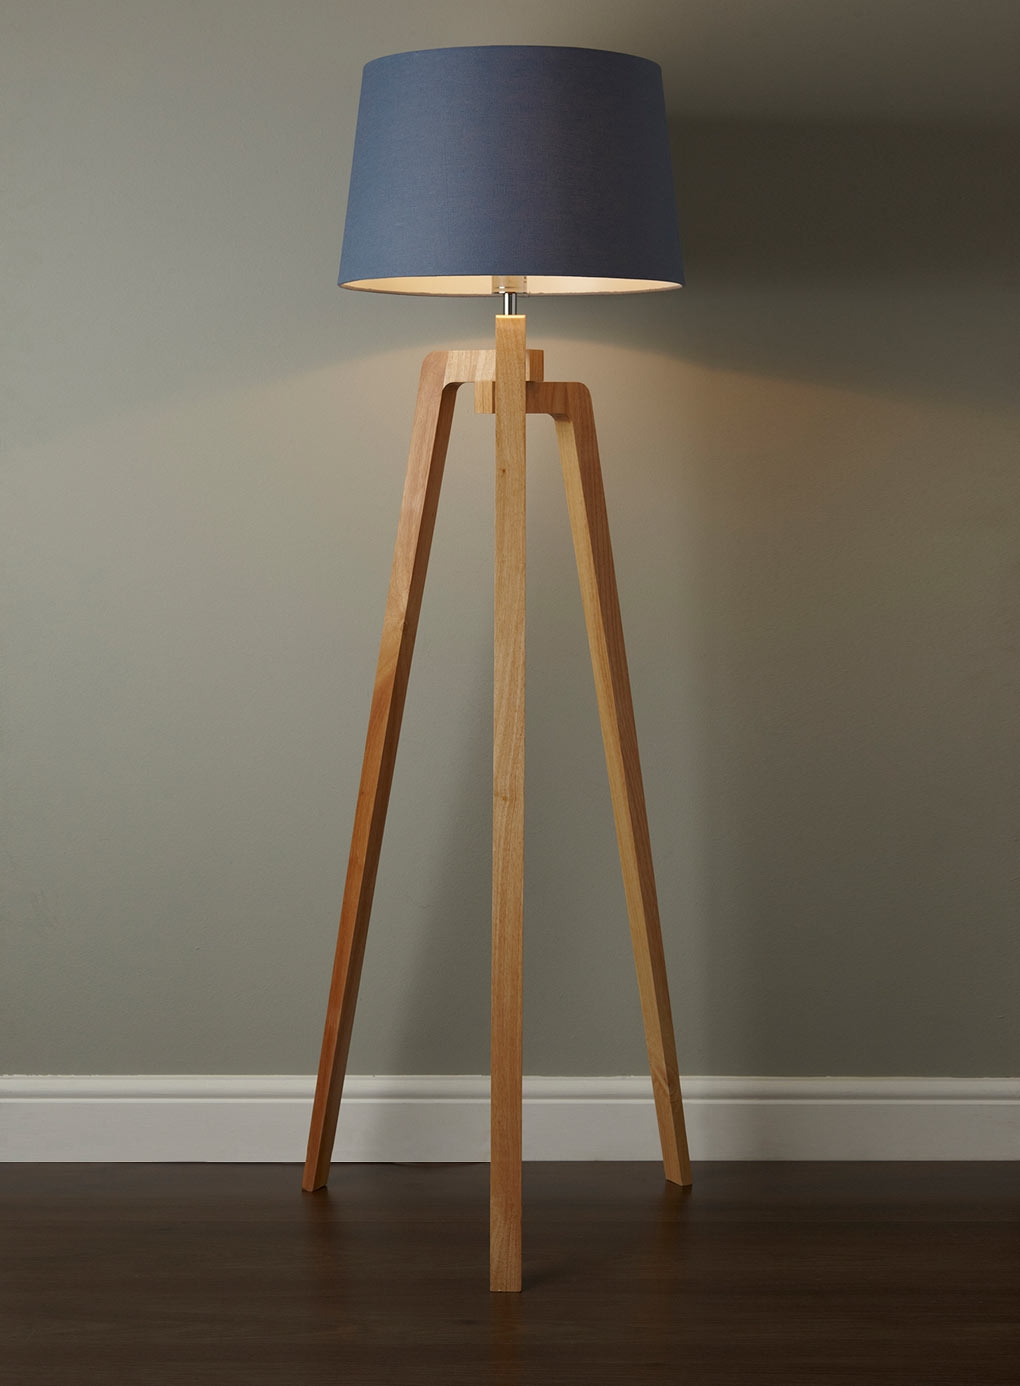 Solid Wood Base Floor Lamp1020 X 1386